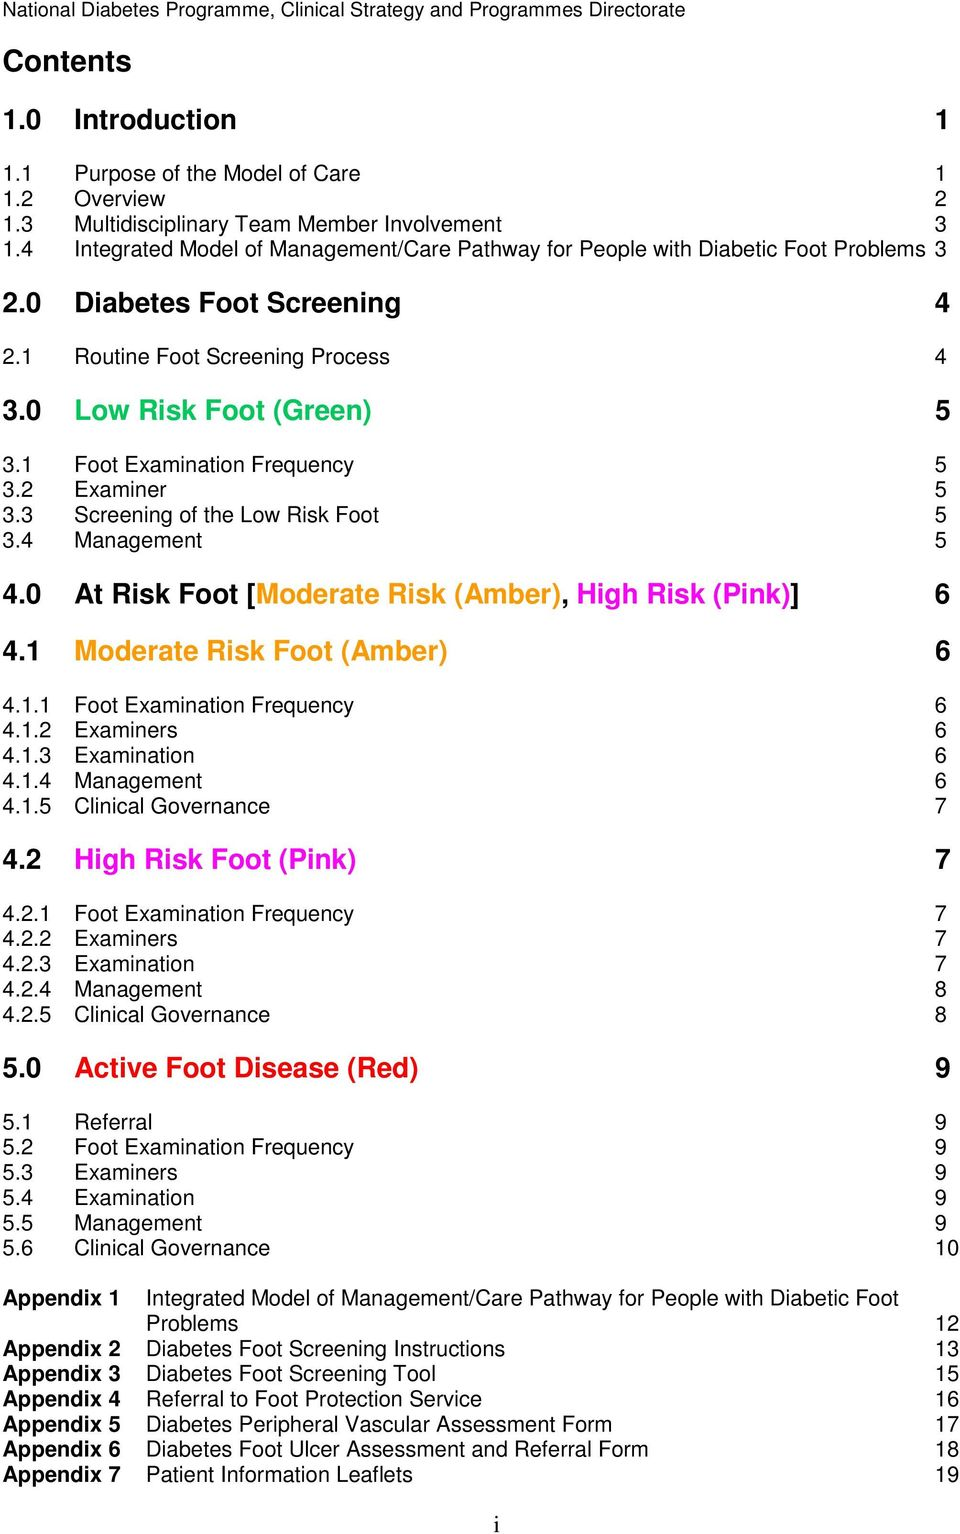 1 Foot Examination Frequency 5 3.2 Examiner 5 3.3 Screening of the Low Risk Foot 5 3.4 Management 5 4.0 At Risk Foot [Moderate Risk (Amber), High Risk (Pink)] 6 4.1 Moderate Risk Foot (Amber) 6 4.1.1 Foot Examination Frequency 6 4.